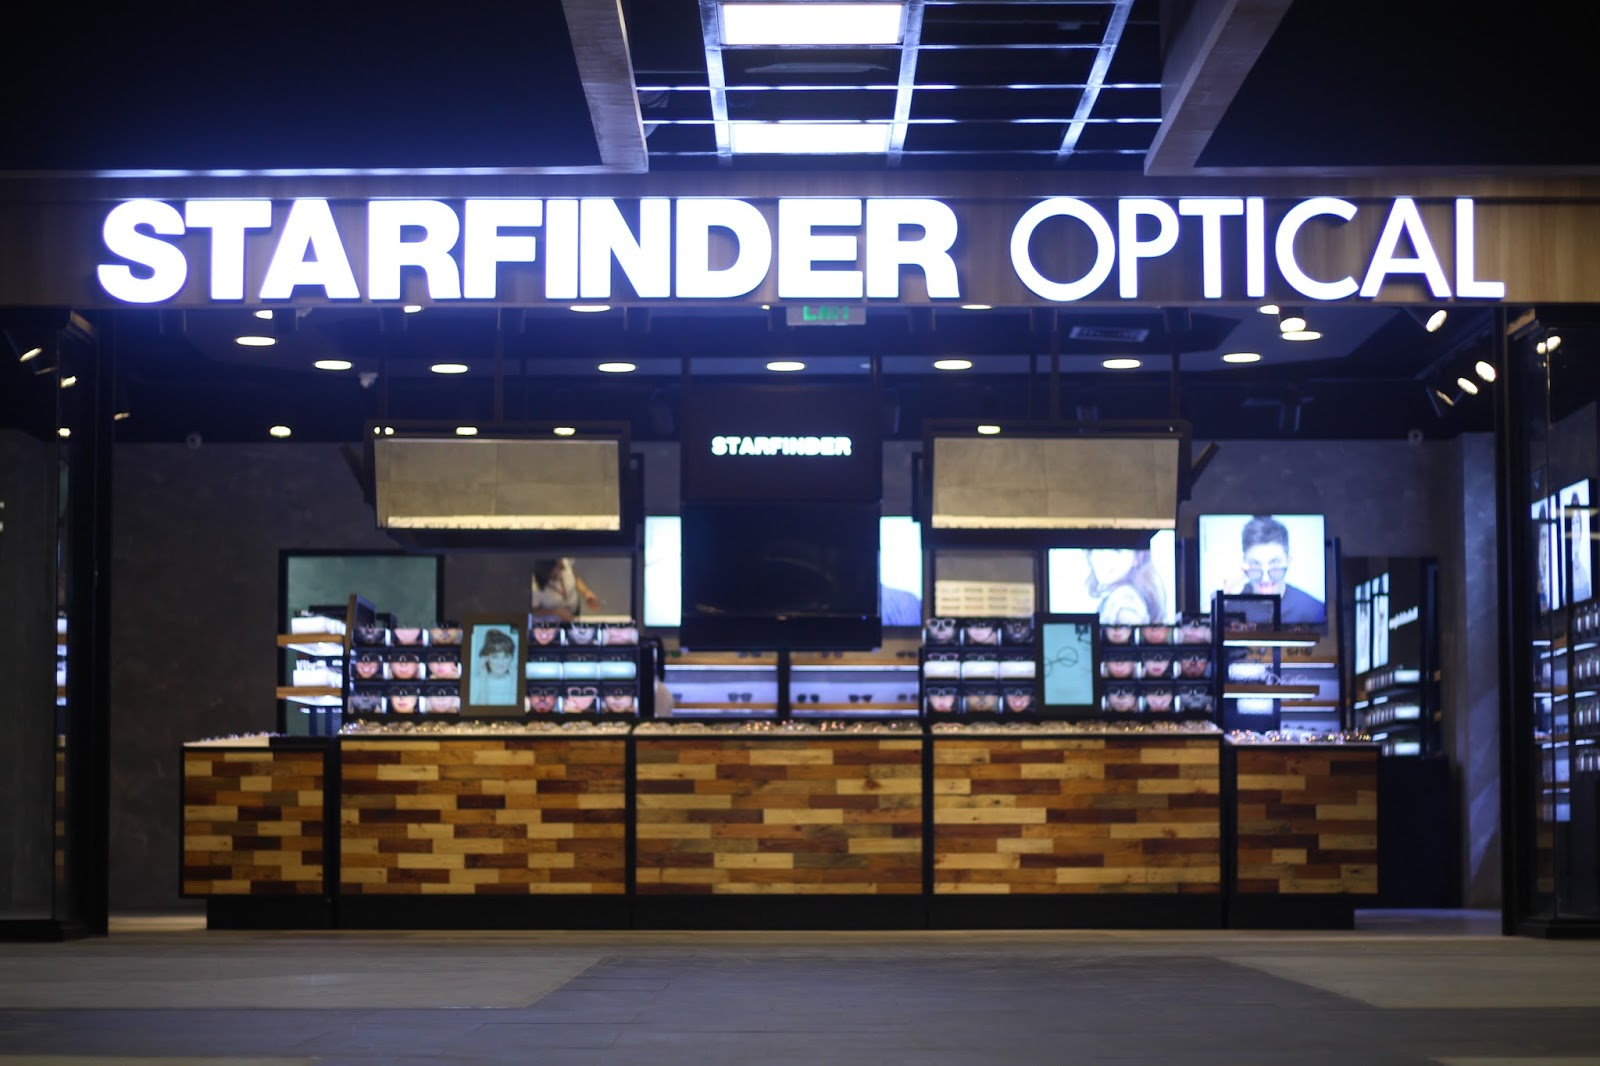 This Is E Life First Korean Concept Optical Shop Expands Footprint In Quezon City